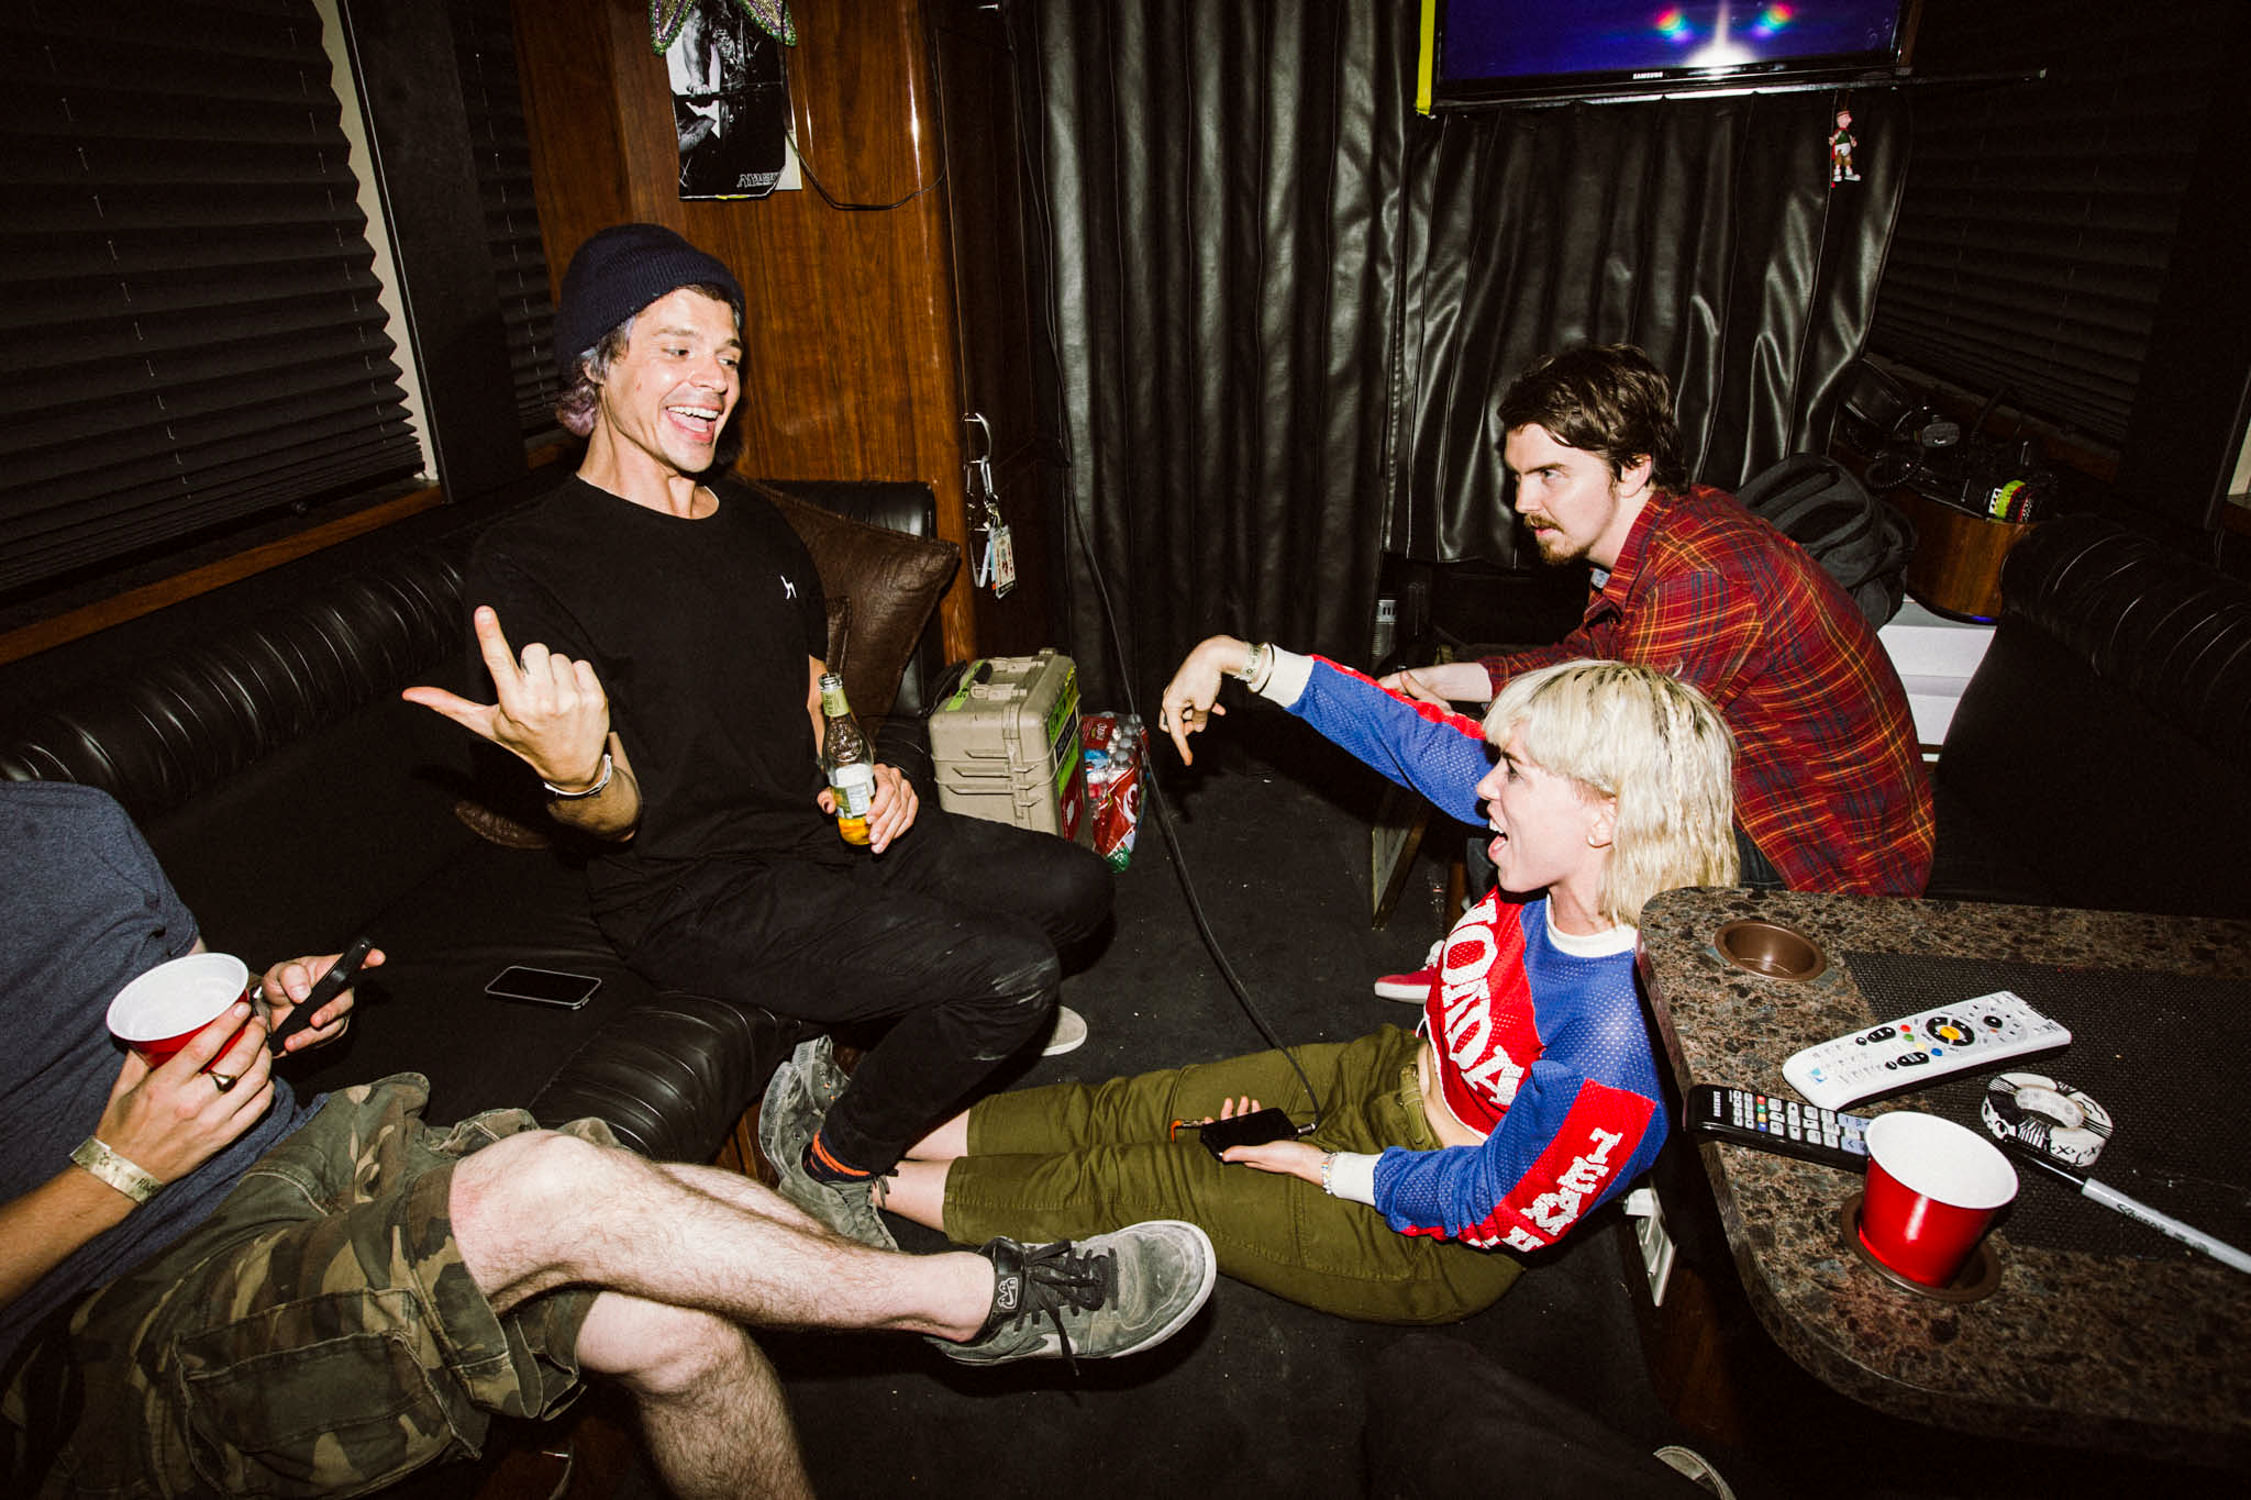 grouplove-singing-on-tour-bus-candid-AnnaLeeMedia